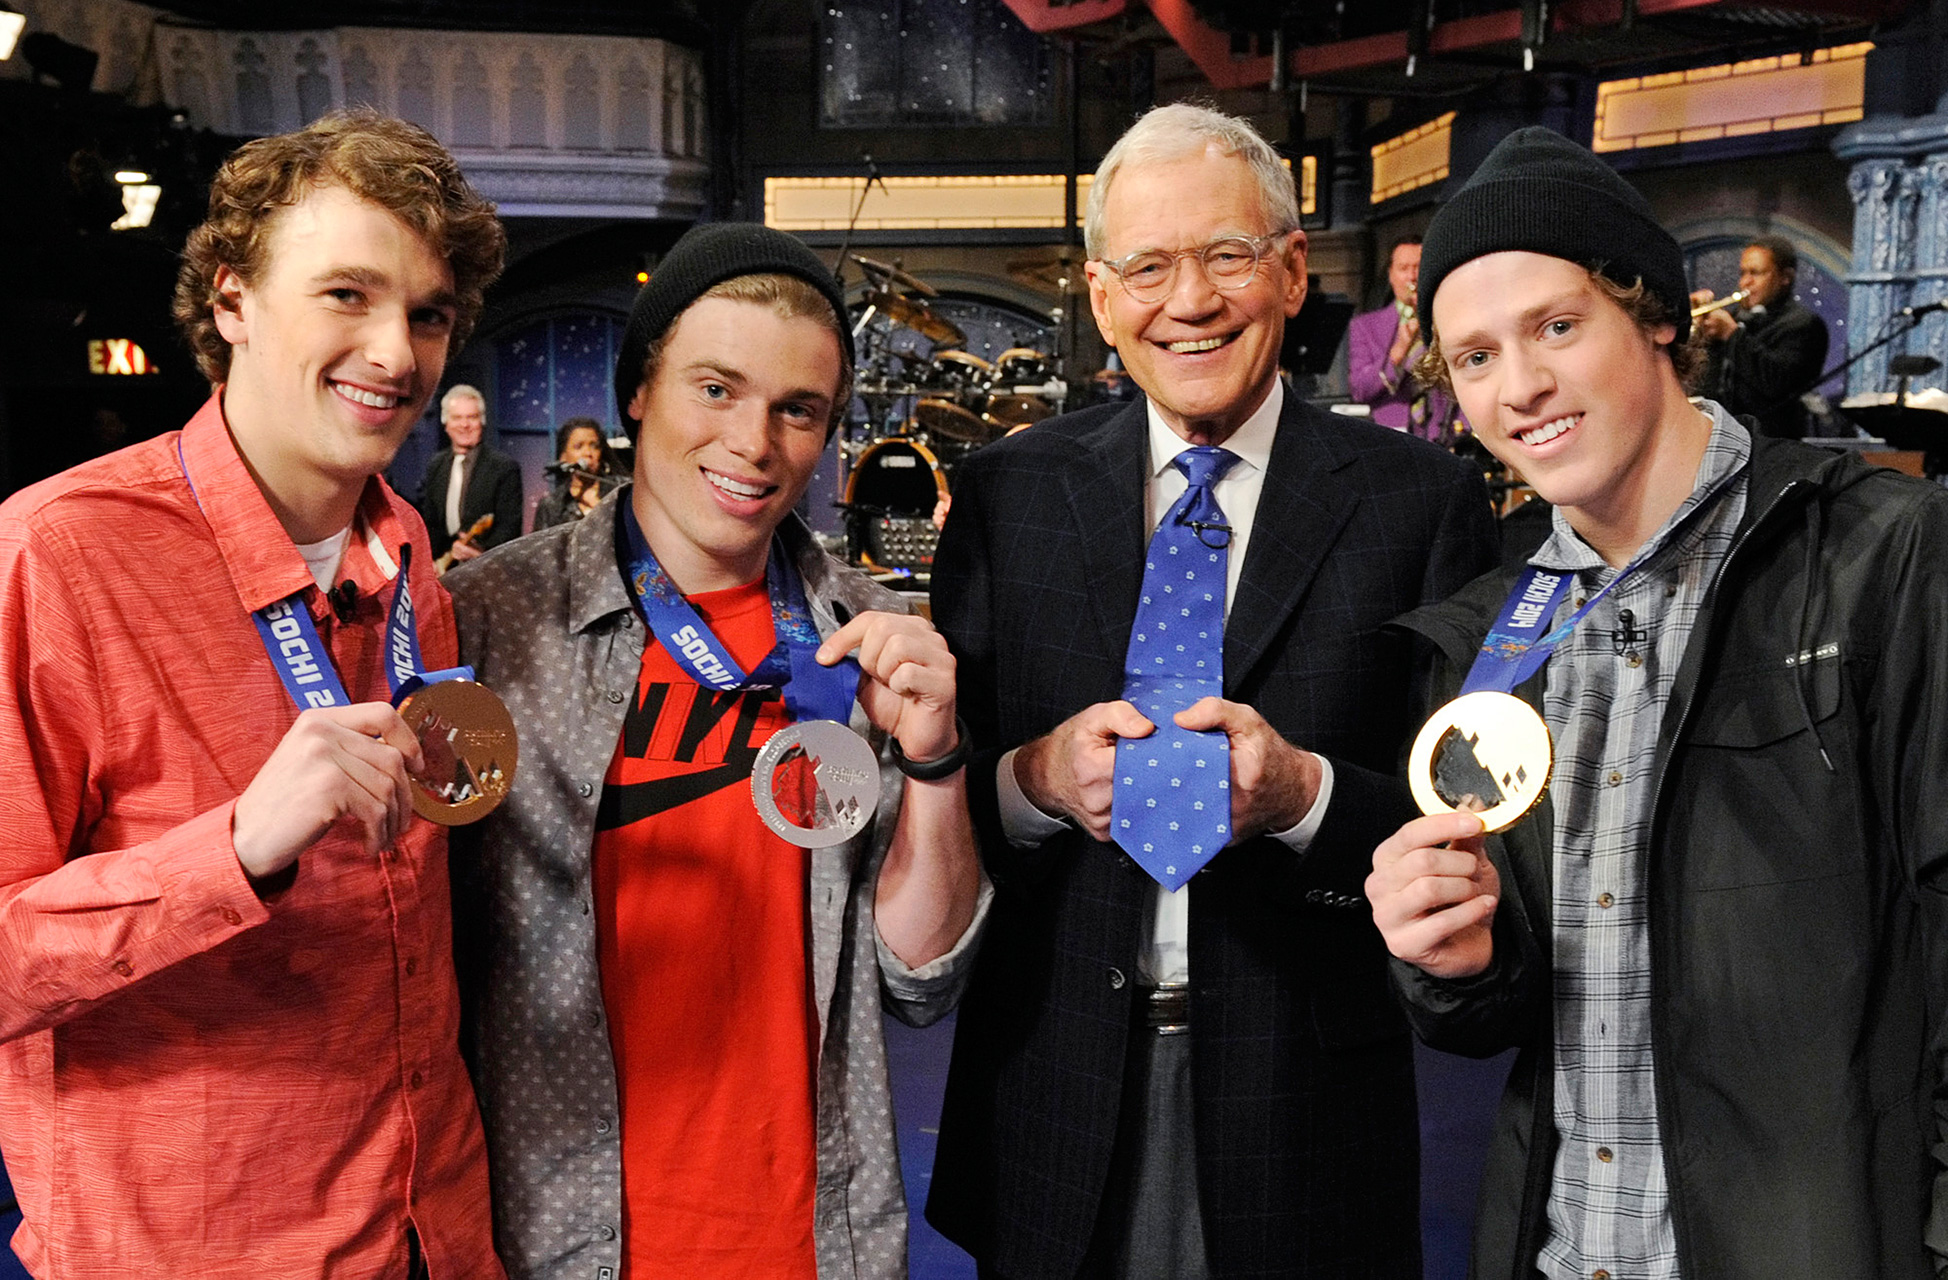 Nick Goepper, Gus Kenworthy, David Letterman and Joss Christensen.